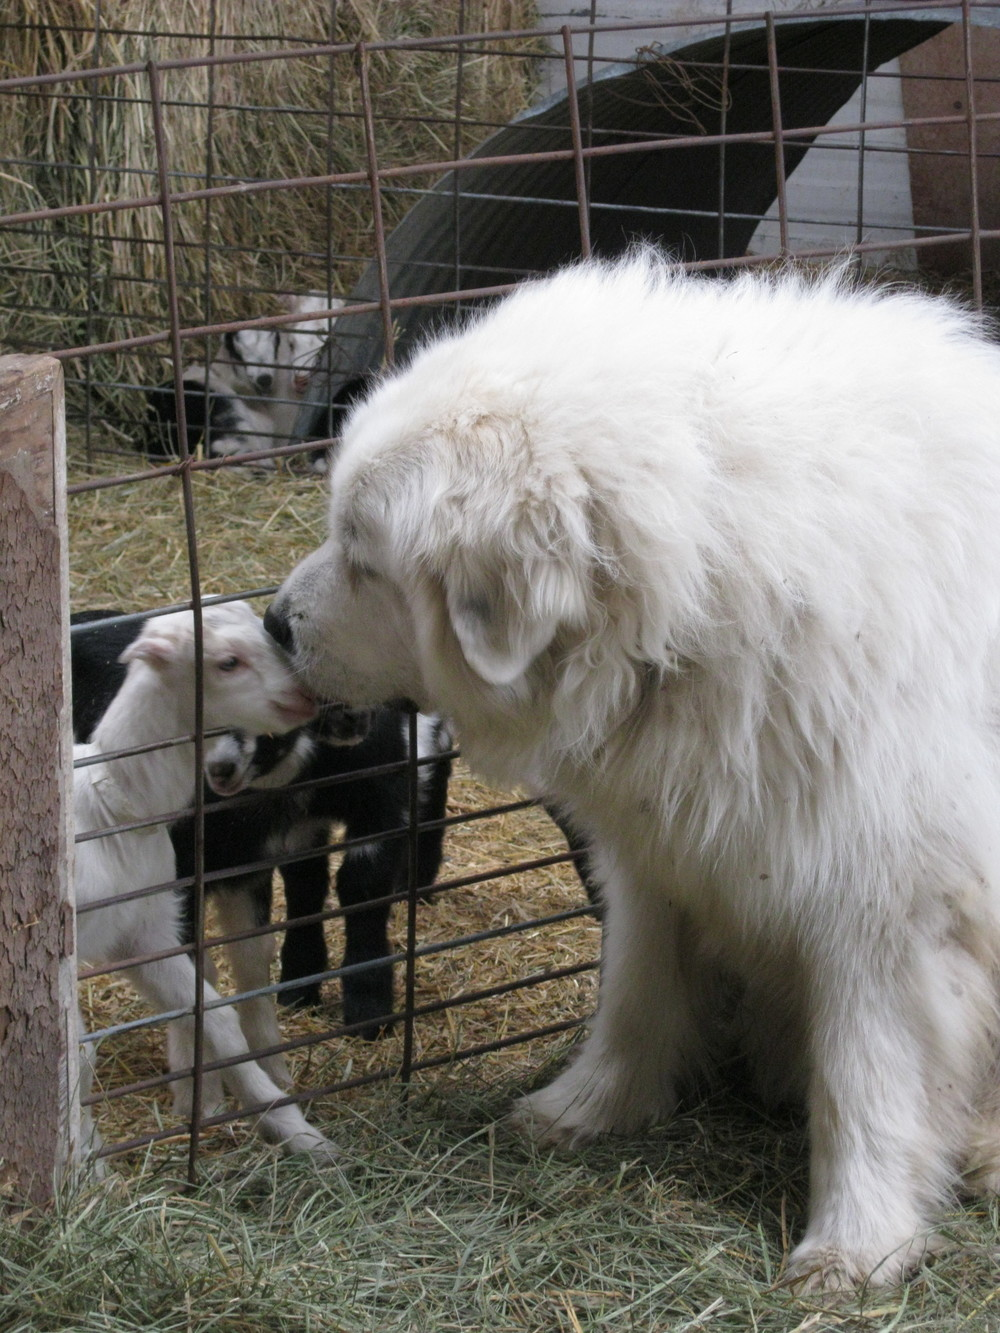 nettie kissing goat